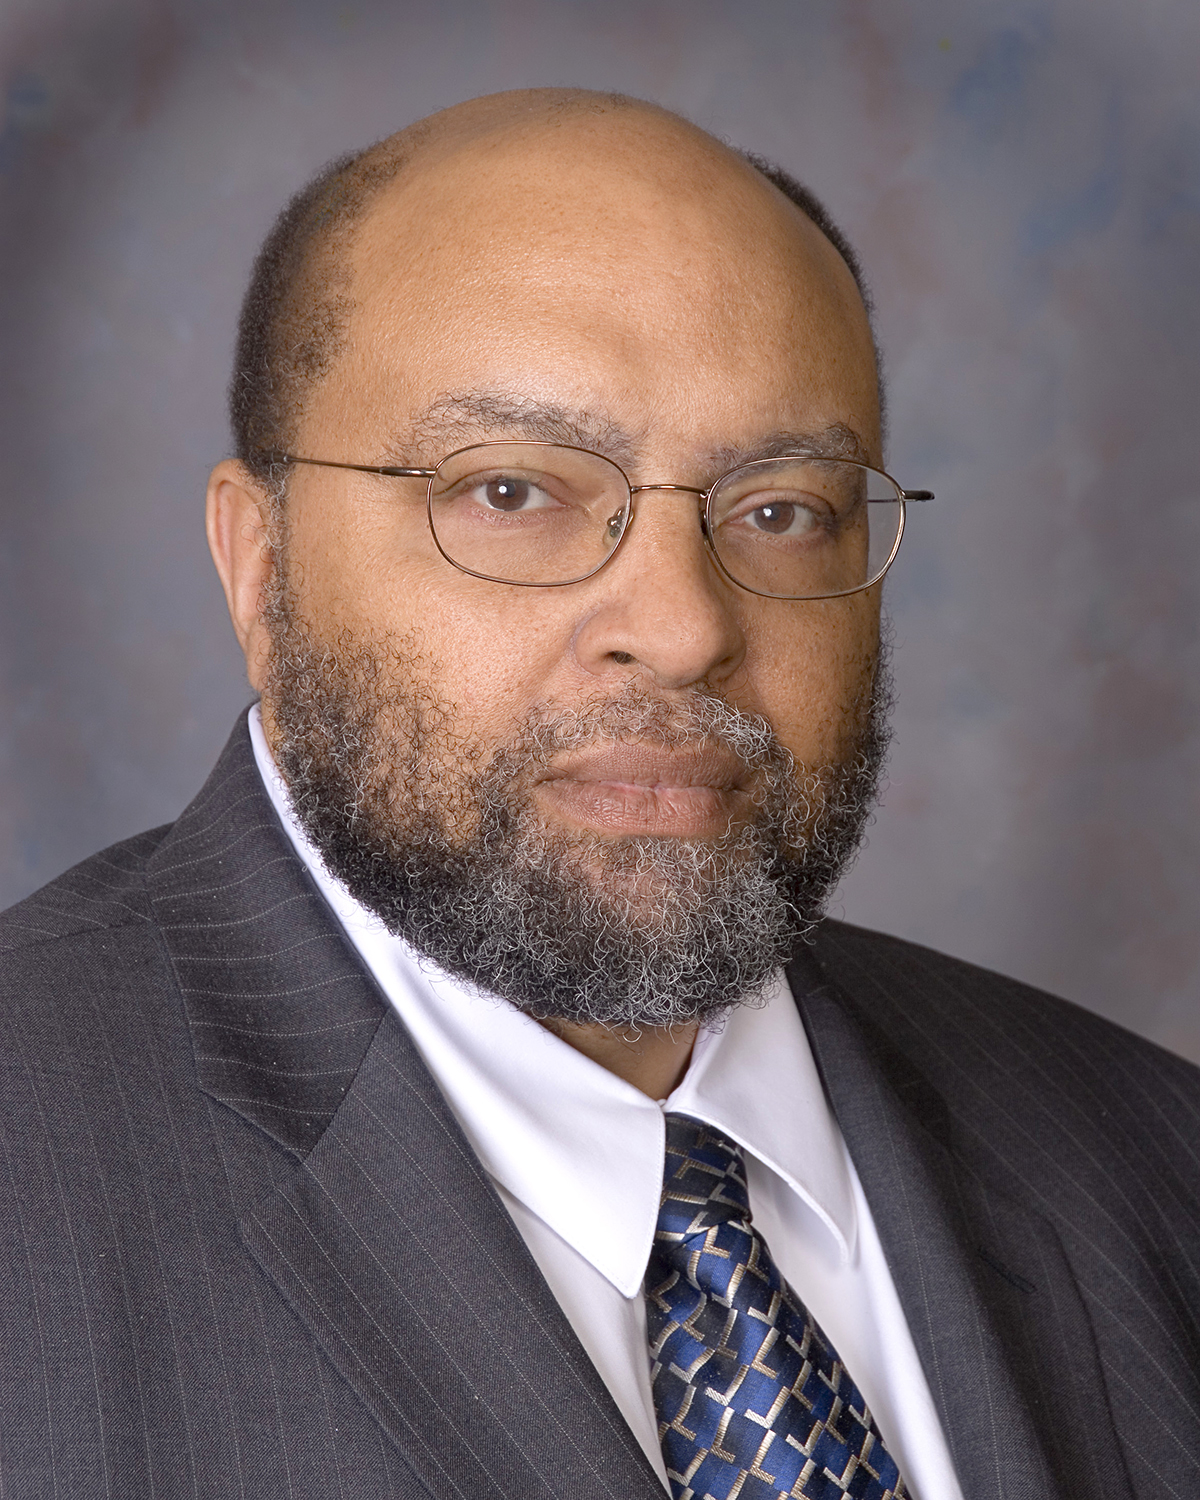 Leroy Pernell